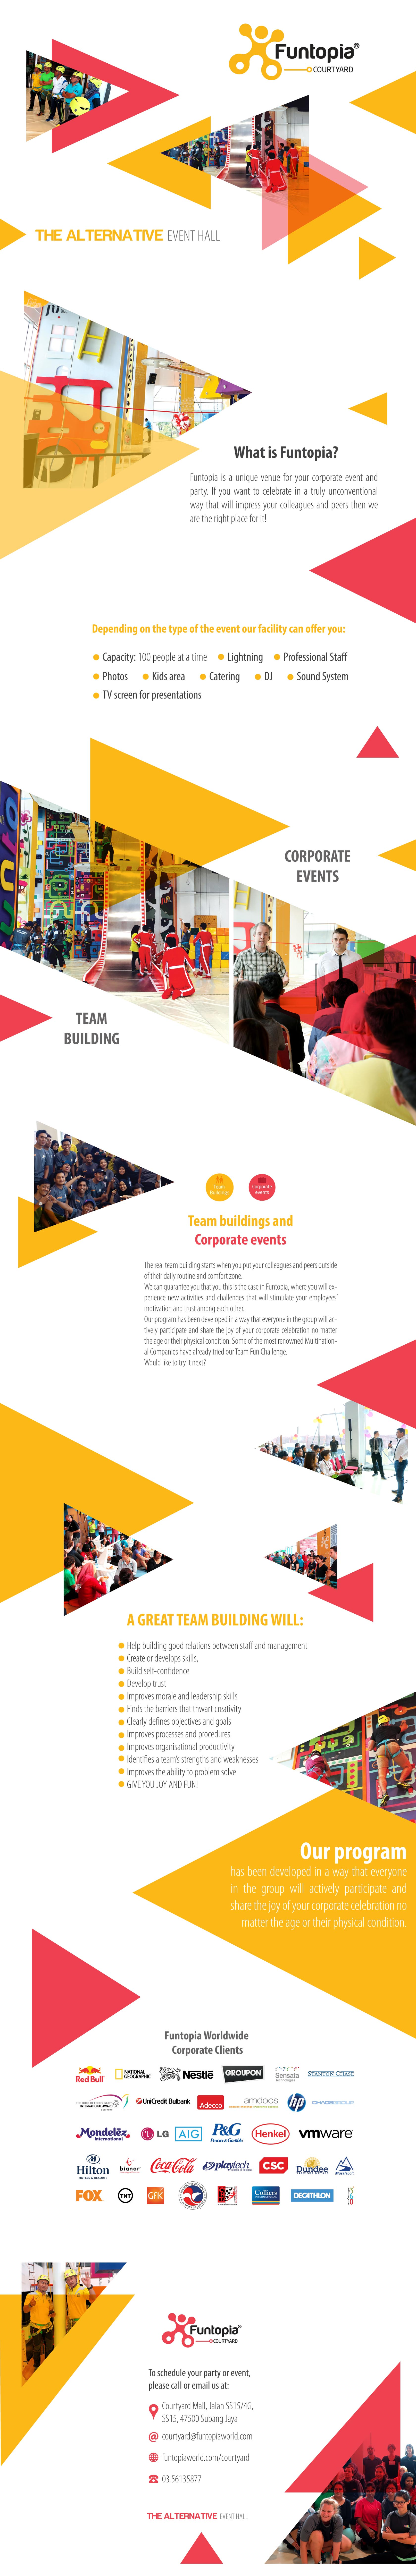 Corporate-events_site3